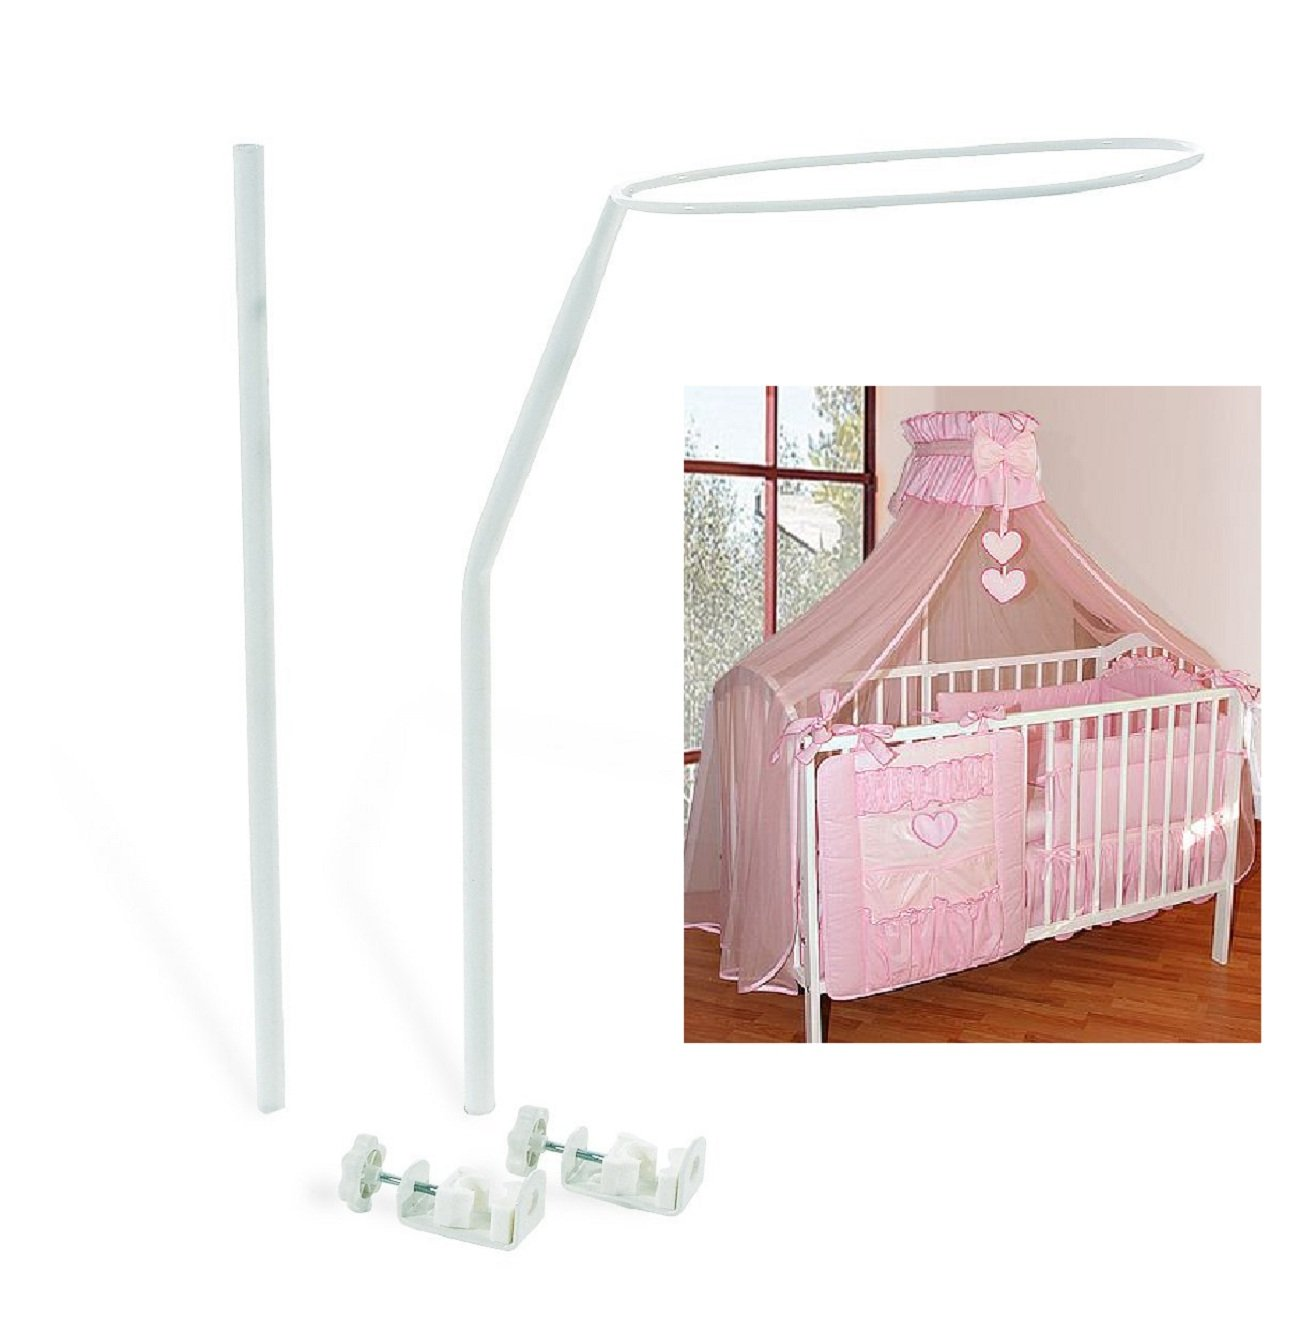 a998b58de3d Universal Canopy Drape Mosquito Net Holder Fits Any Baby Cot Bed Crib Basket   Amazon.co.uk  Baby